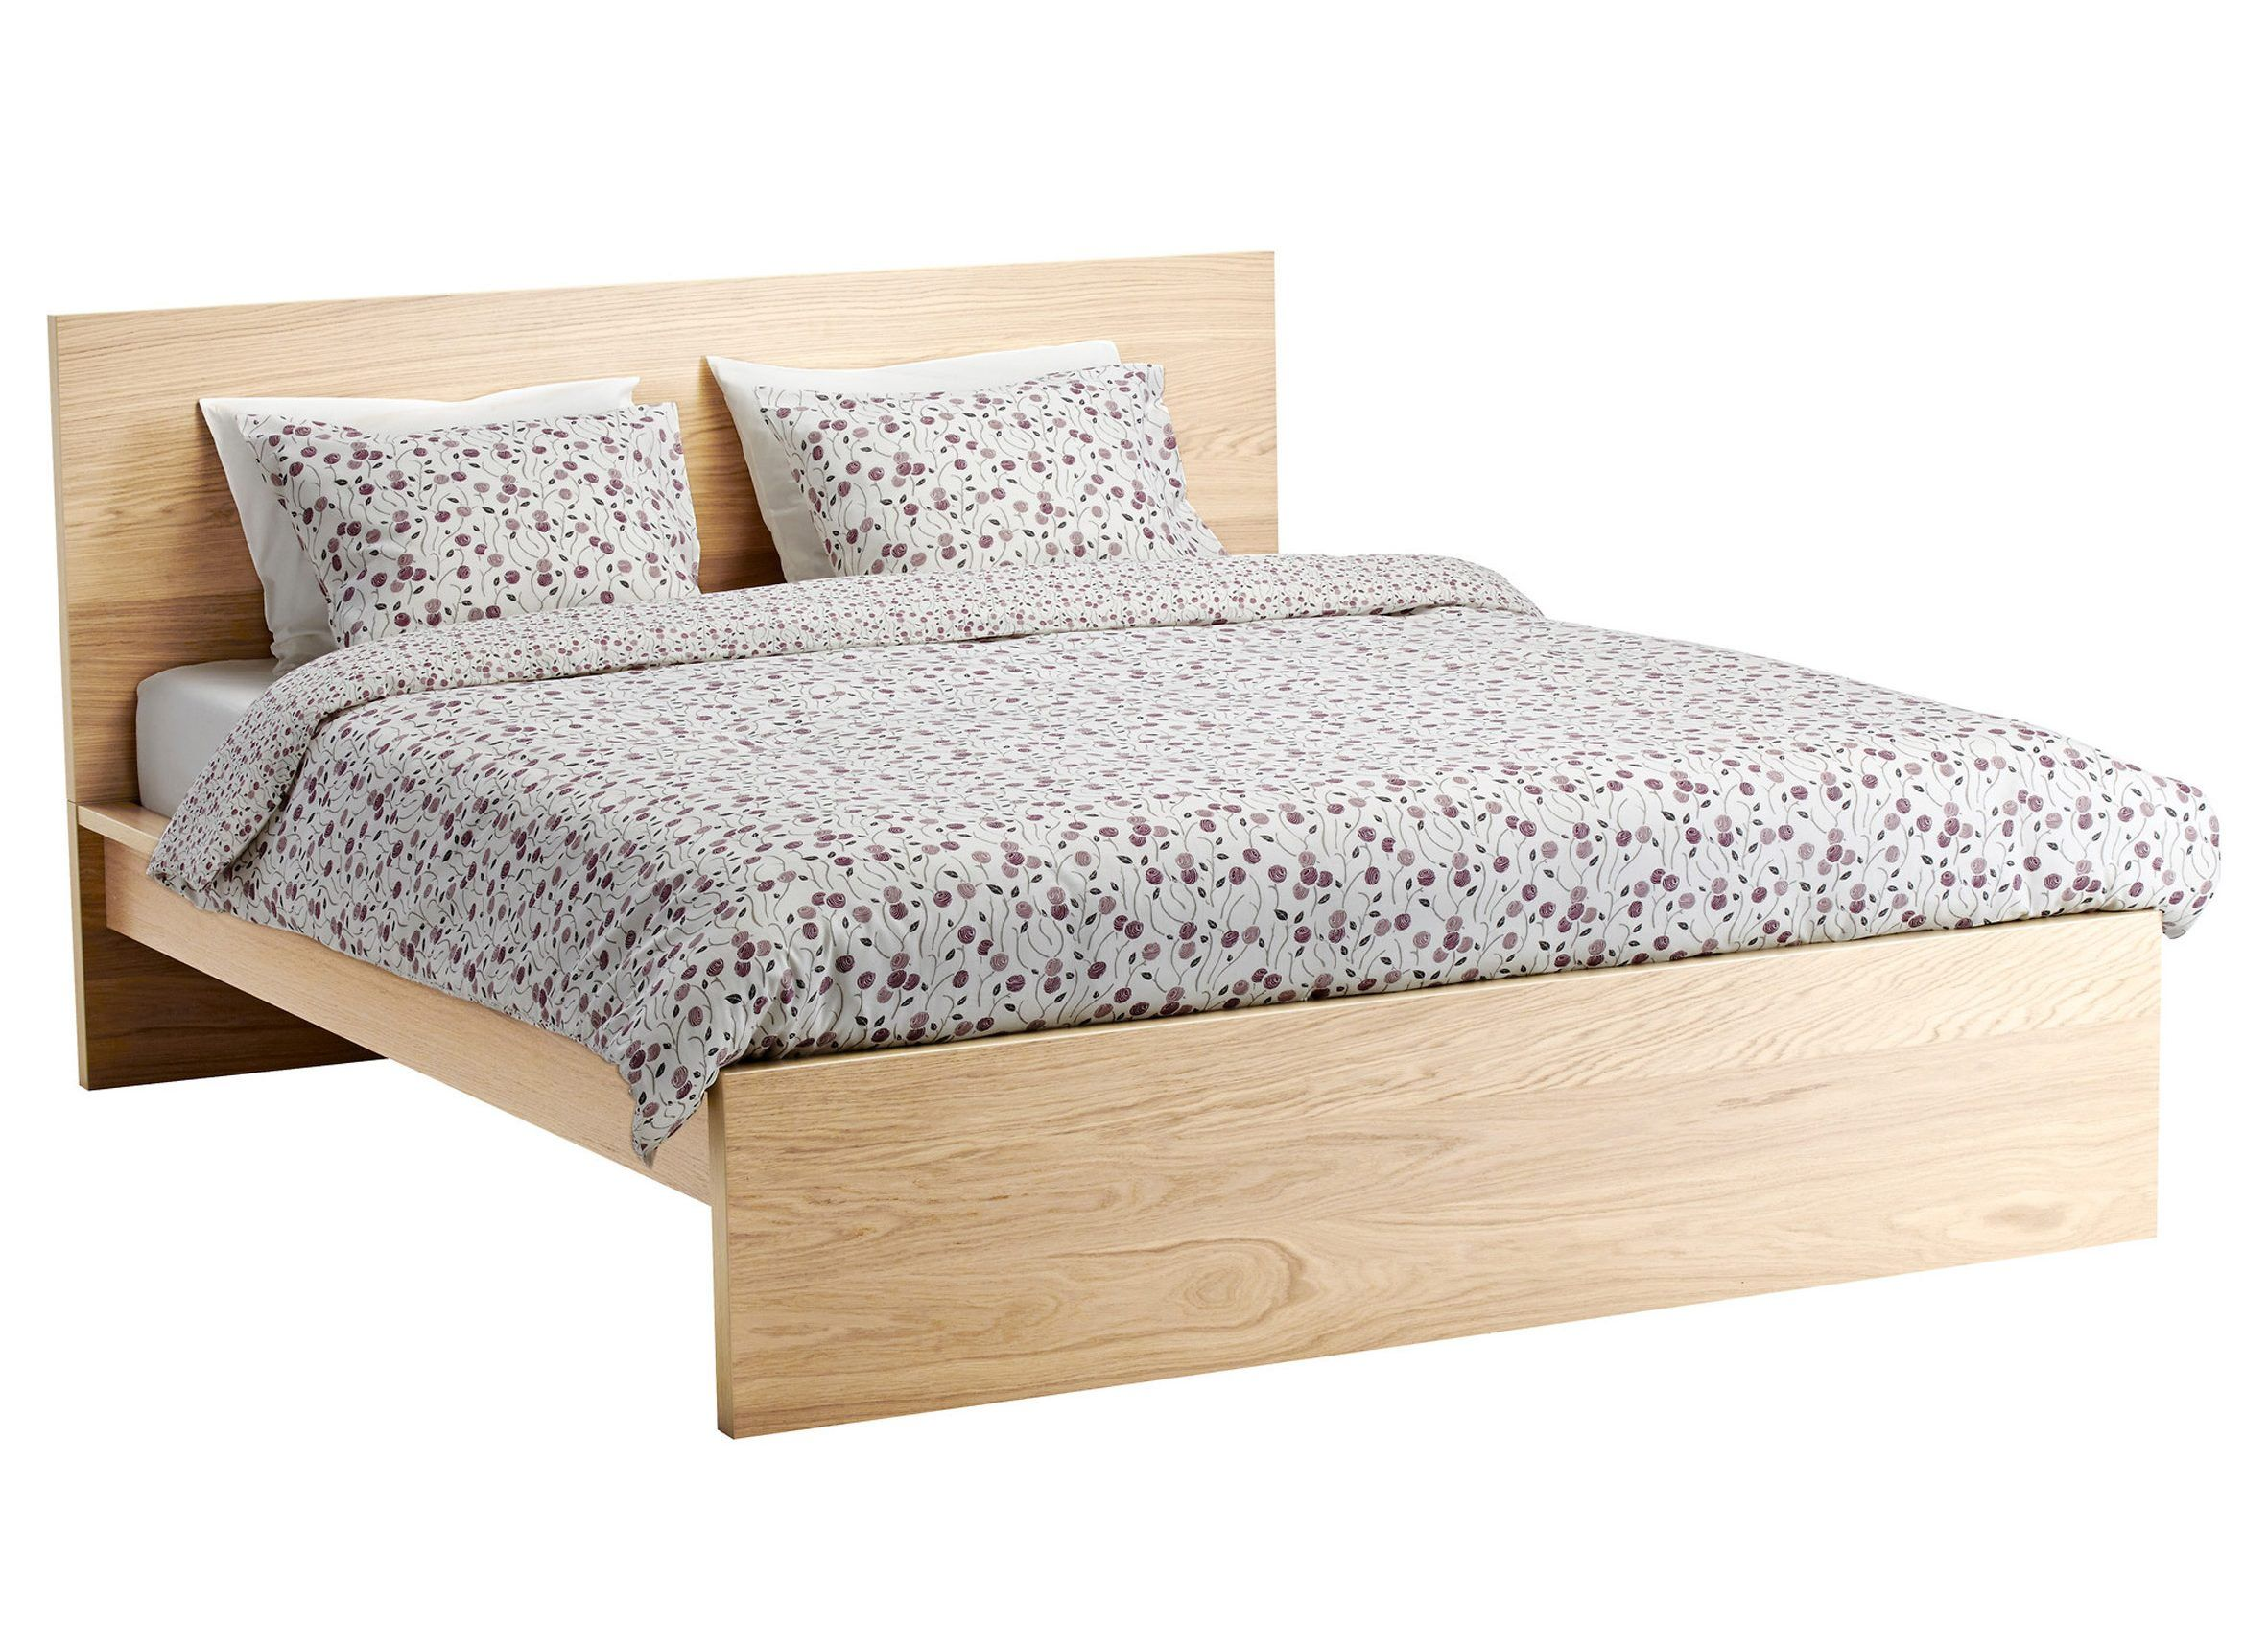 Bestselling Ikea Bed Infringes Copyright Claims E15 Ikea